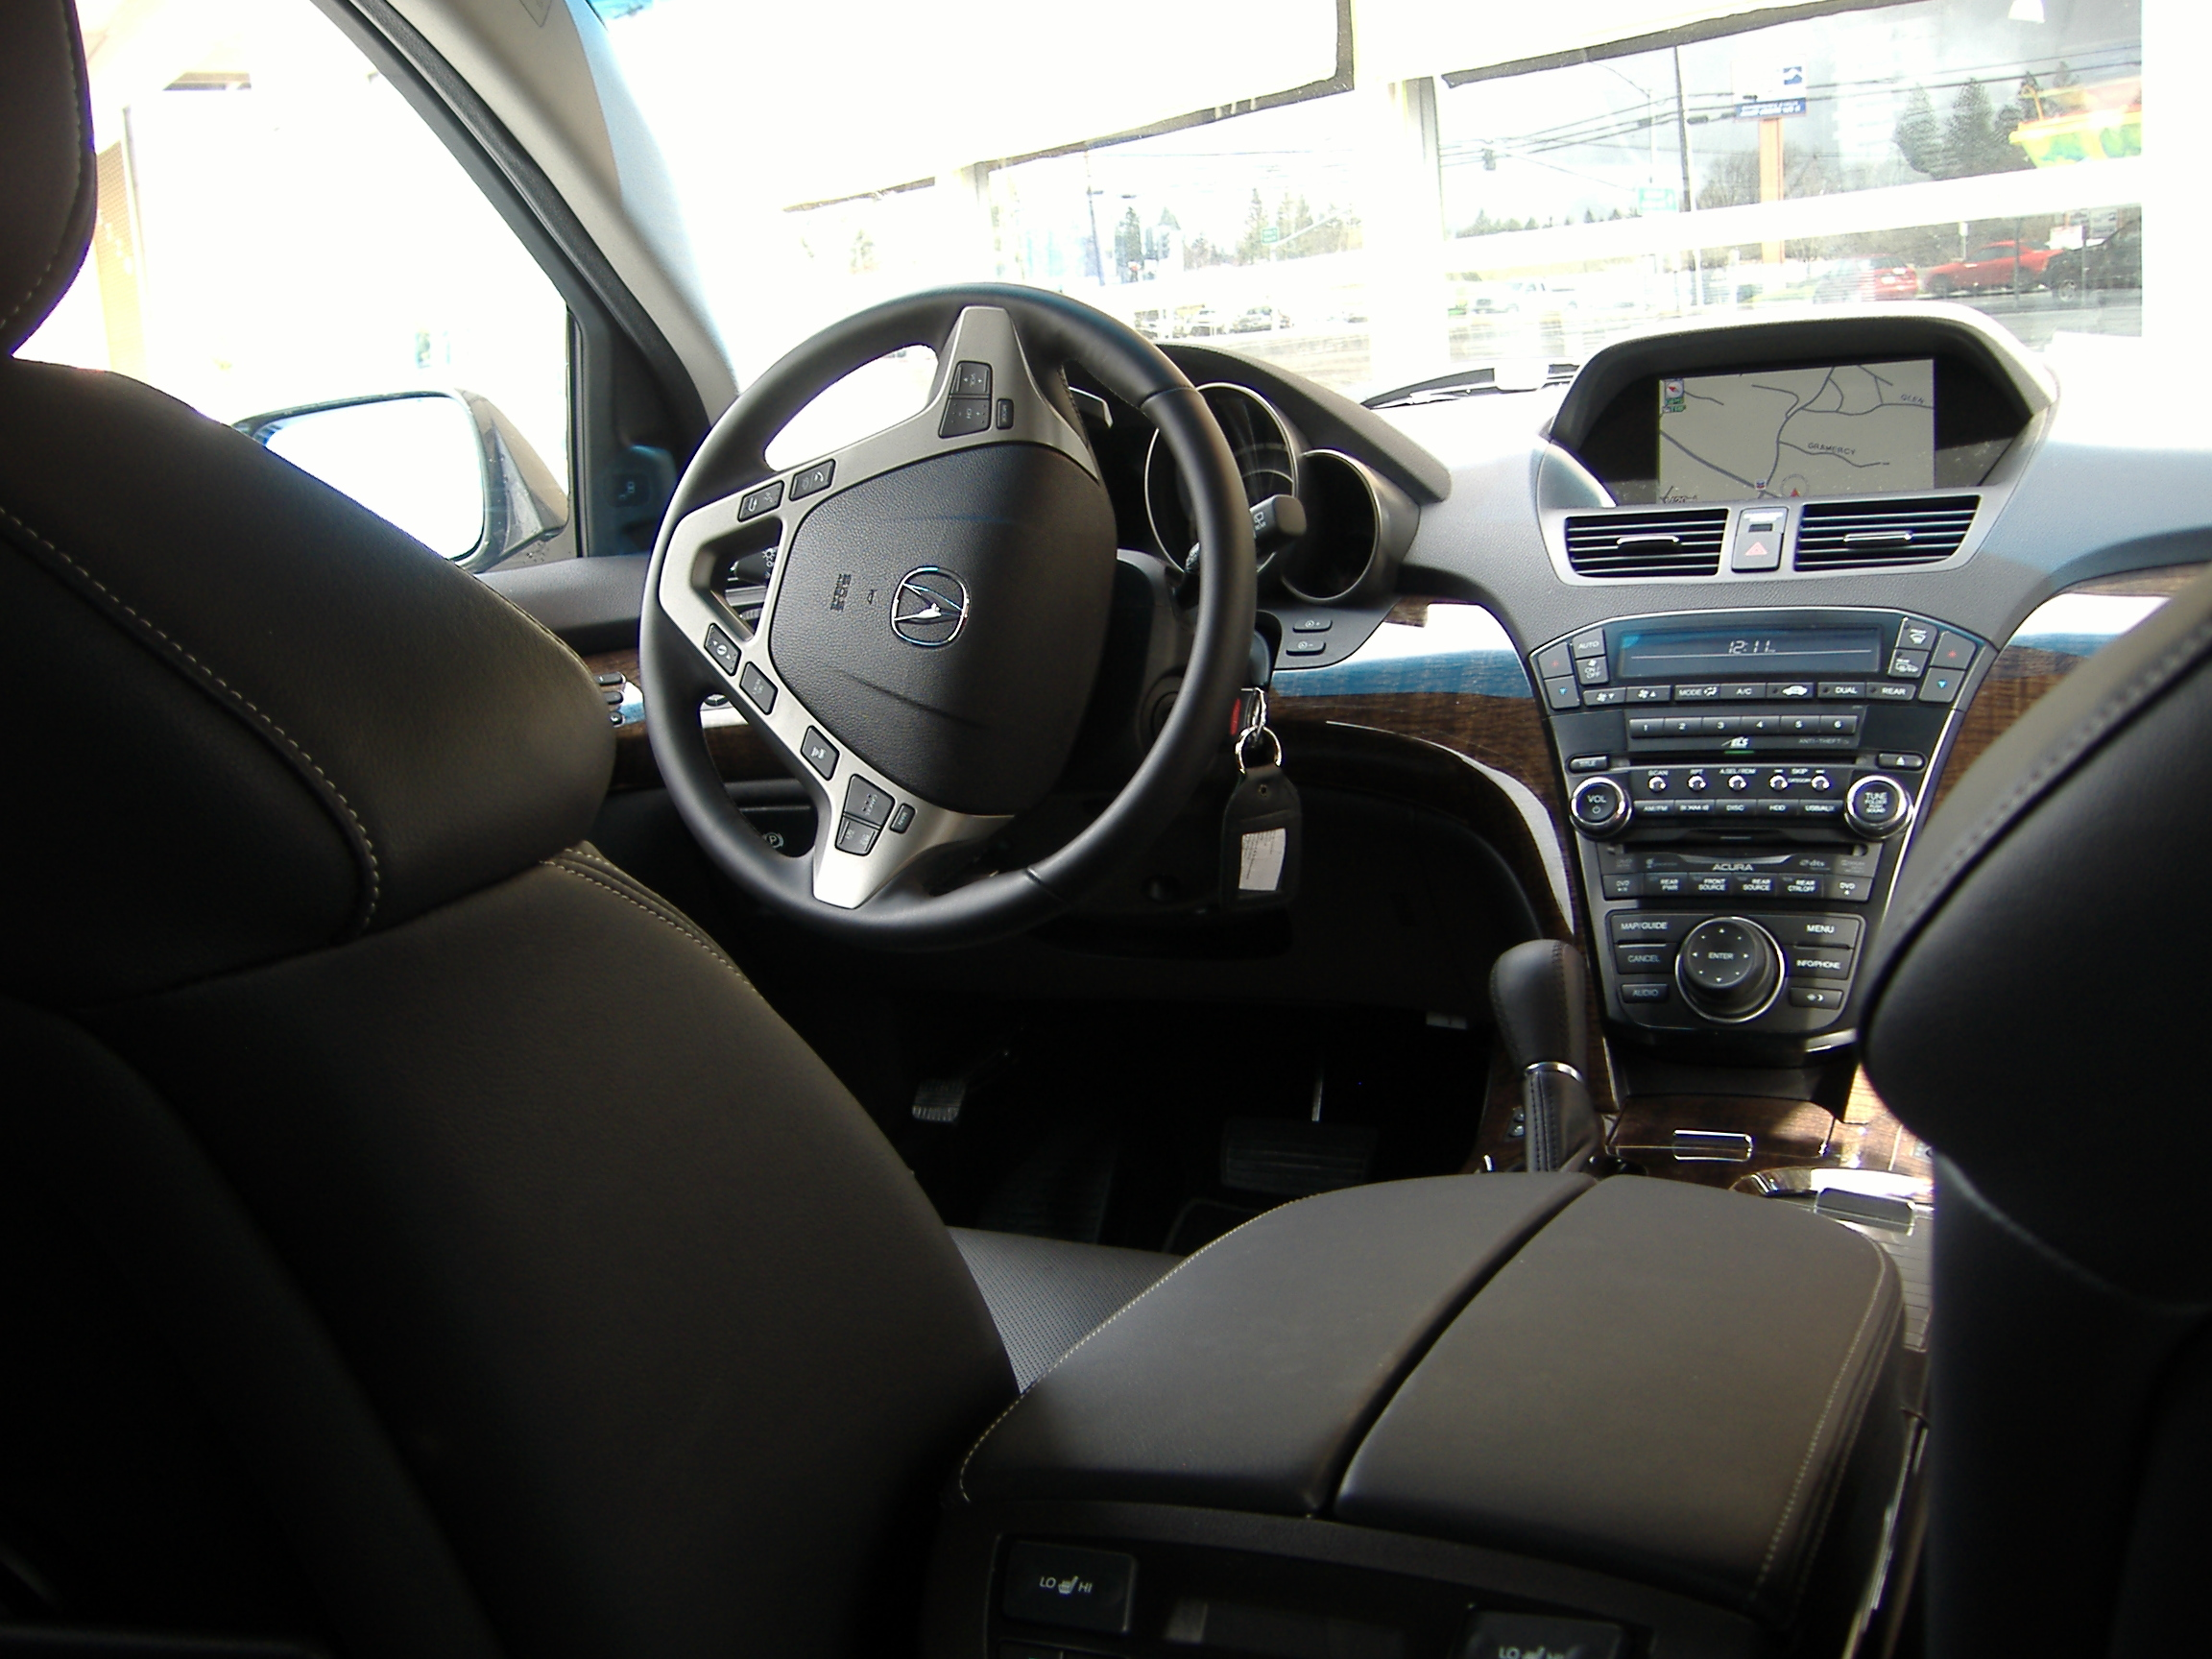 2010 Acura Mdx Review